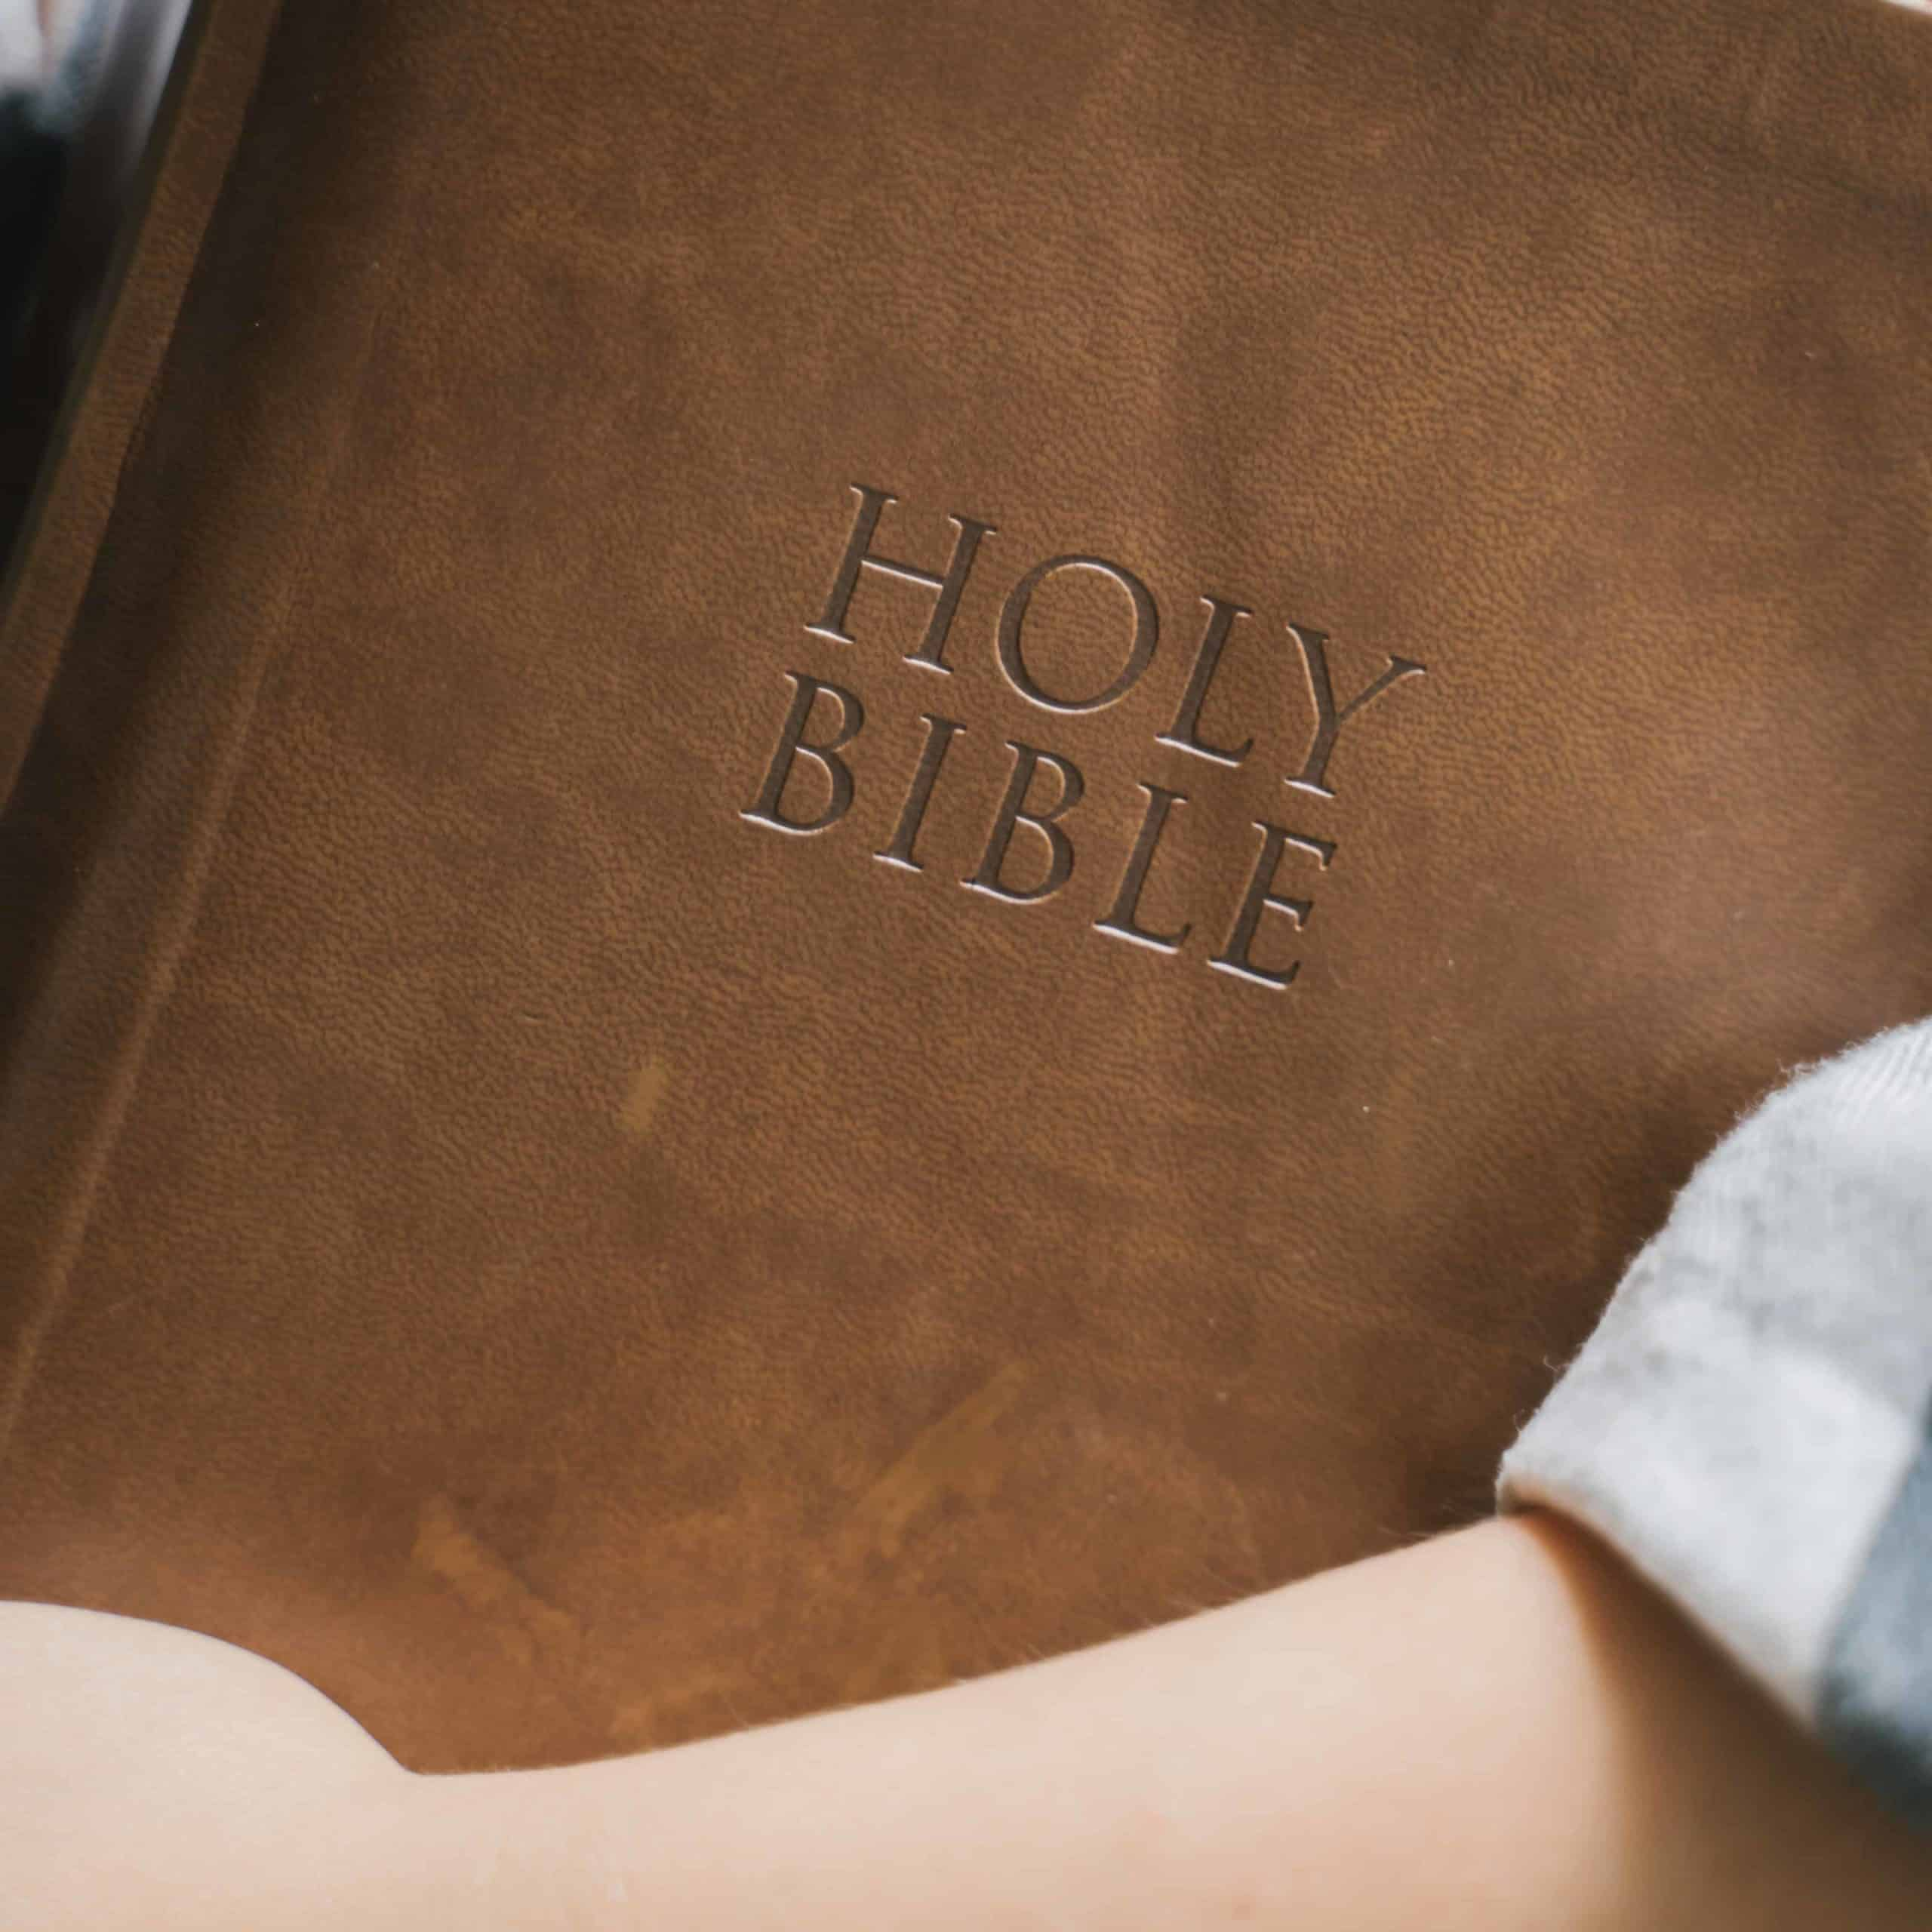 A close up of someone holding a Bible.